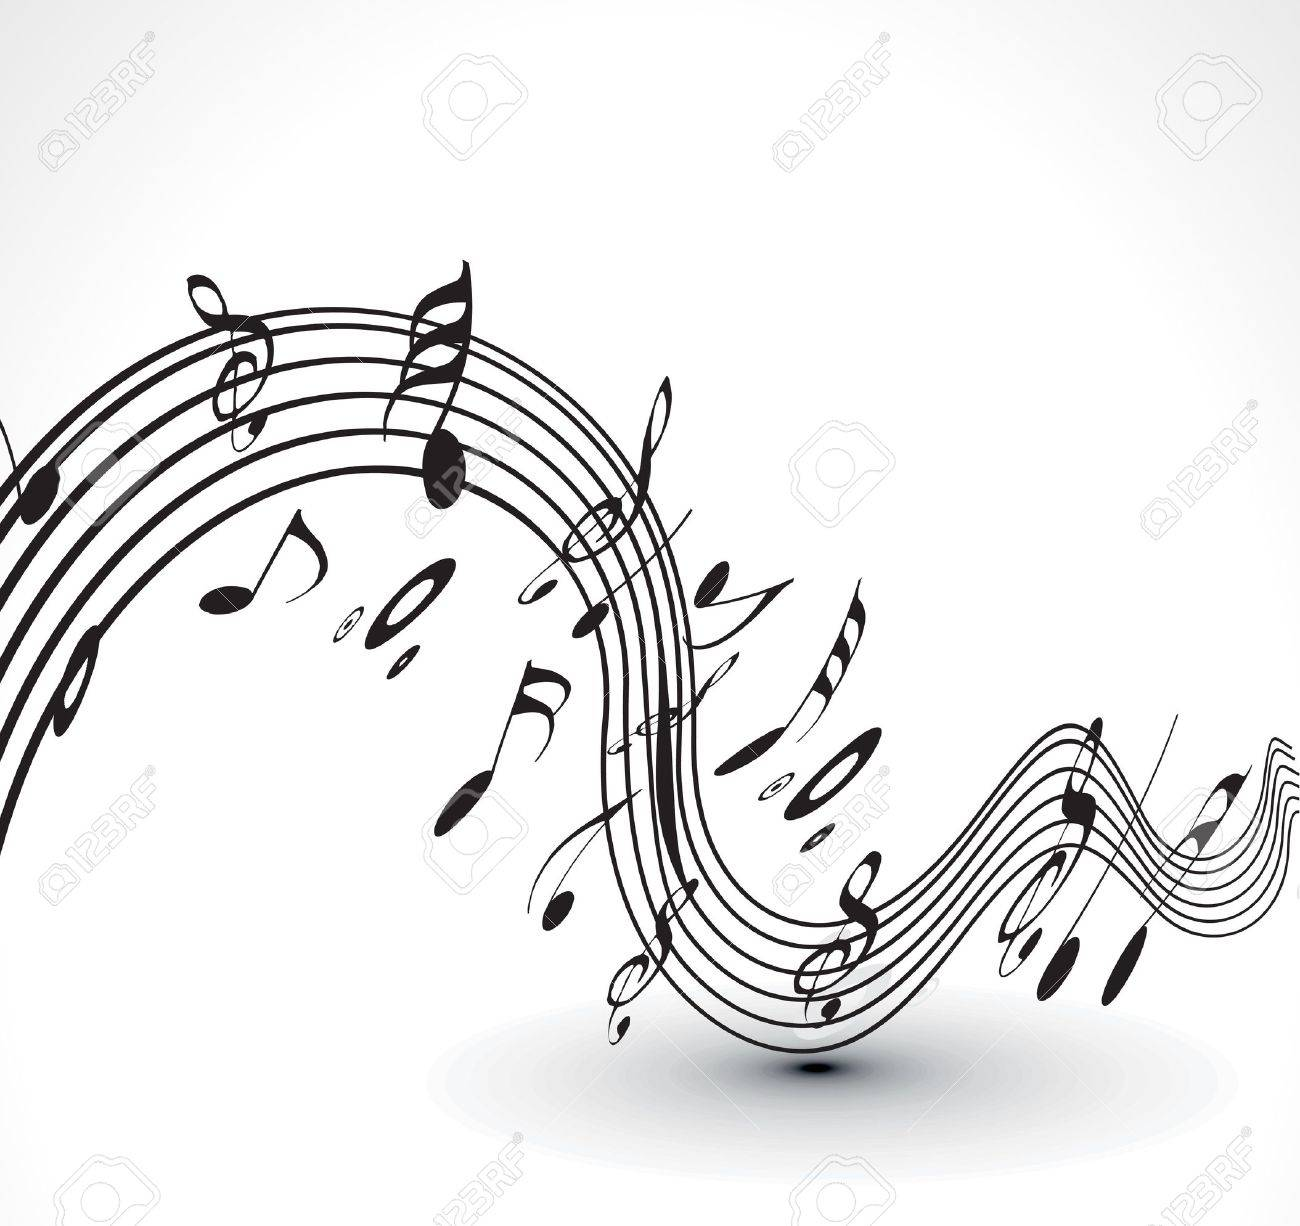 hight resolution of abstract musical notes background for design use stock vector 9543028